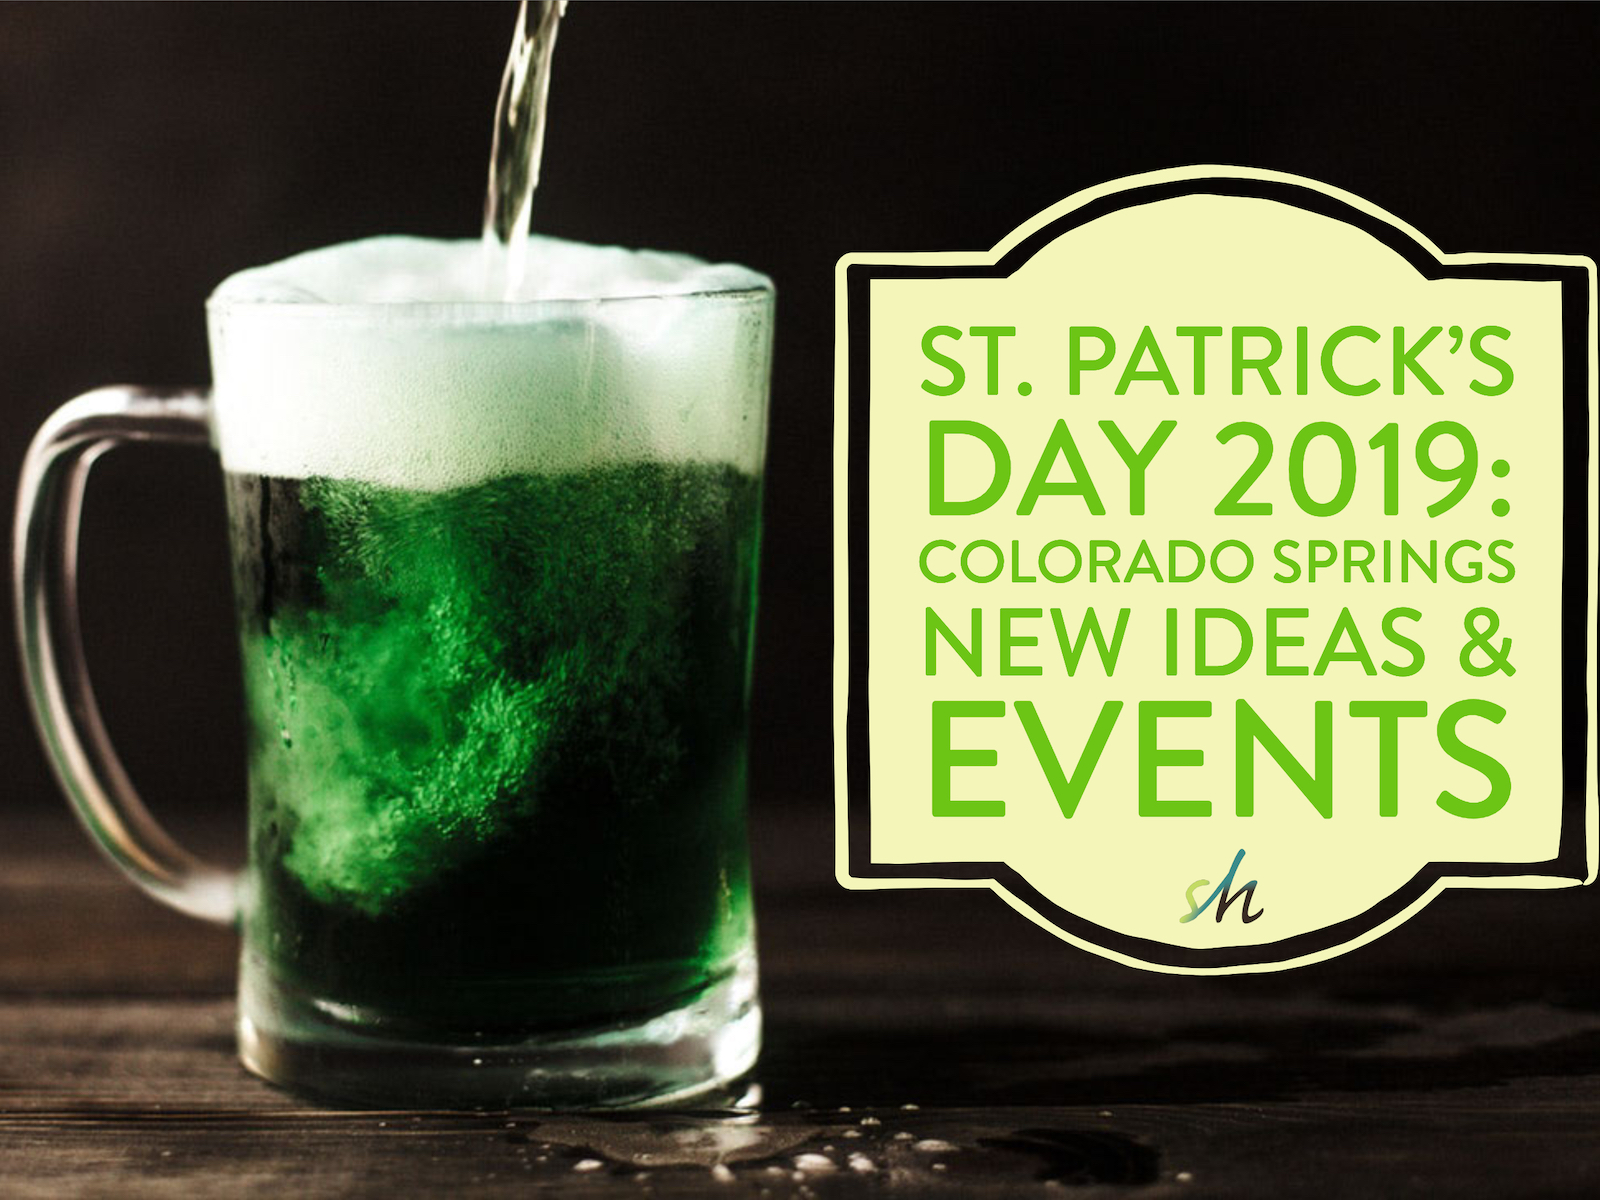 What to do for St. Patrick's Day in Colorado Springs 2019